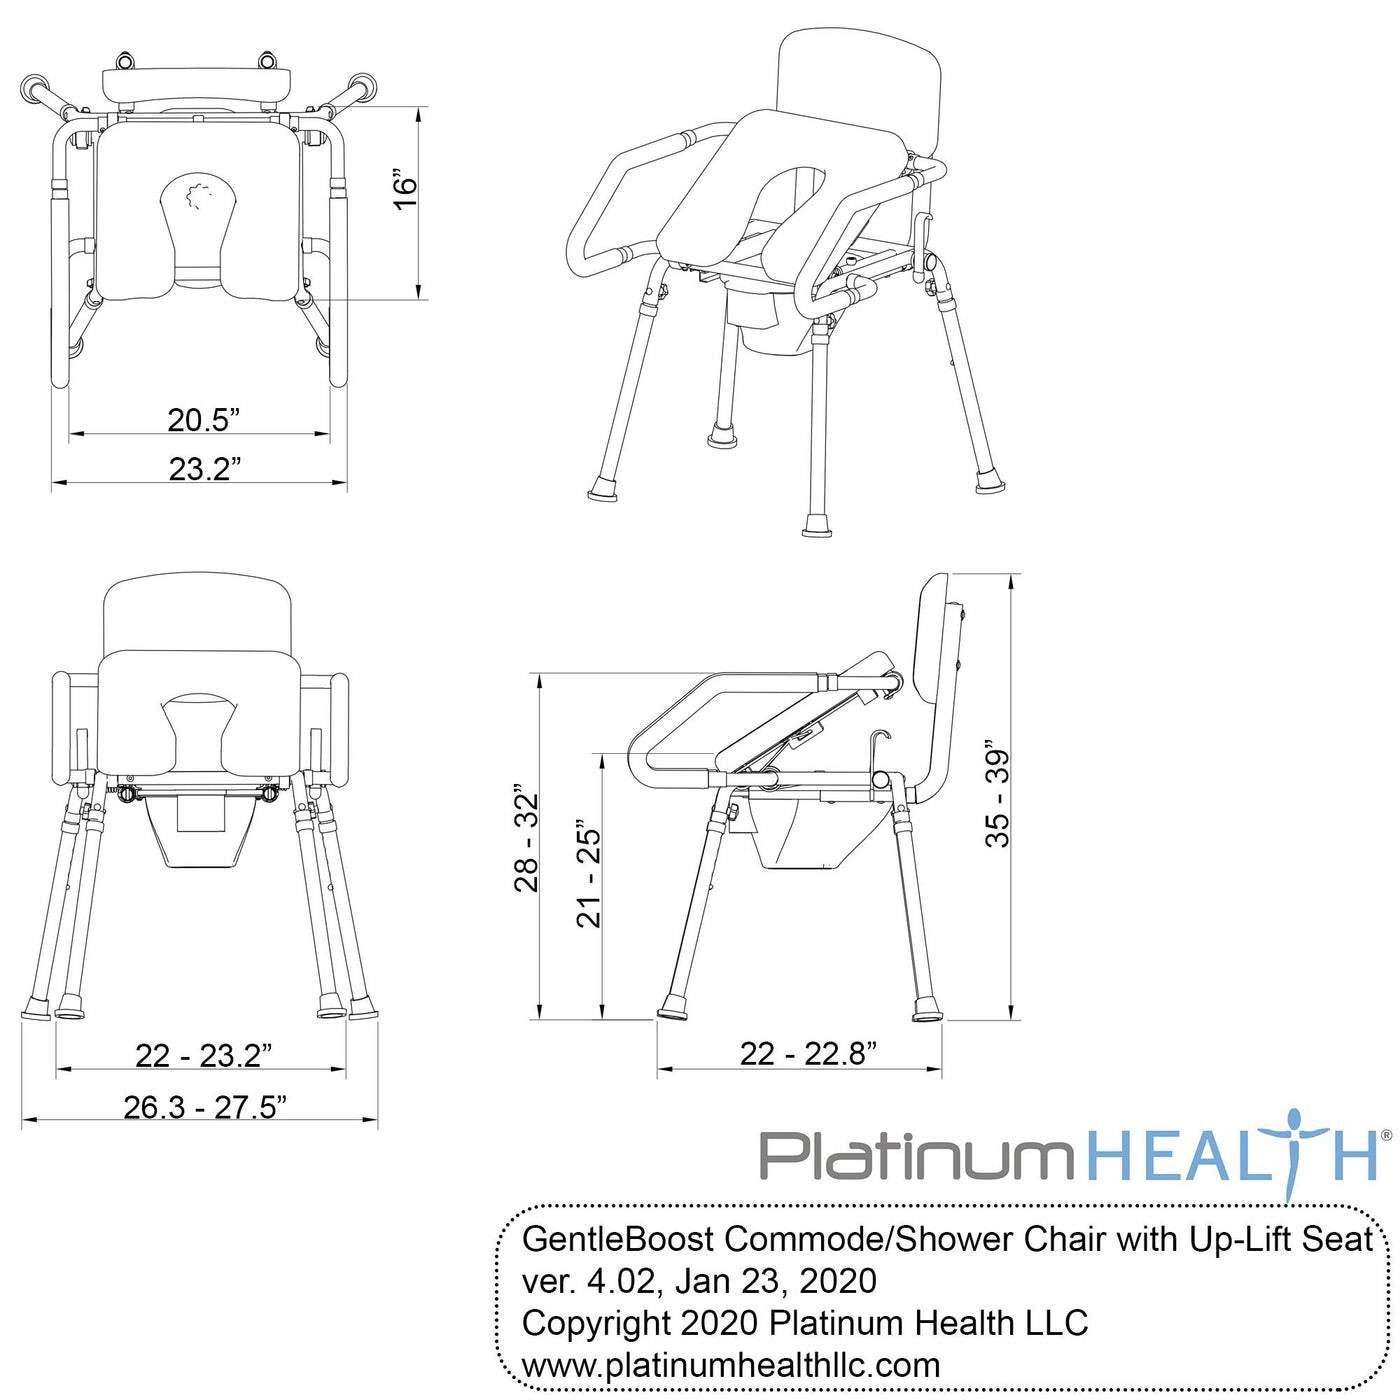 GENTLEBOOST UPLIFT ASSIST COMMODE & SHOWER CHAIR WITH INTEGRATED TOILET SAFETY RAIL SELF-POWERED UPLIFT SEAT - dimensions